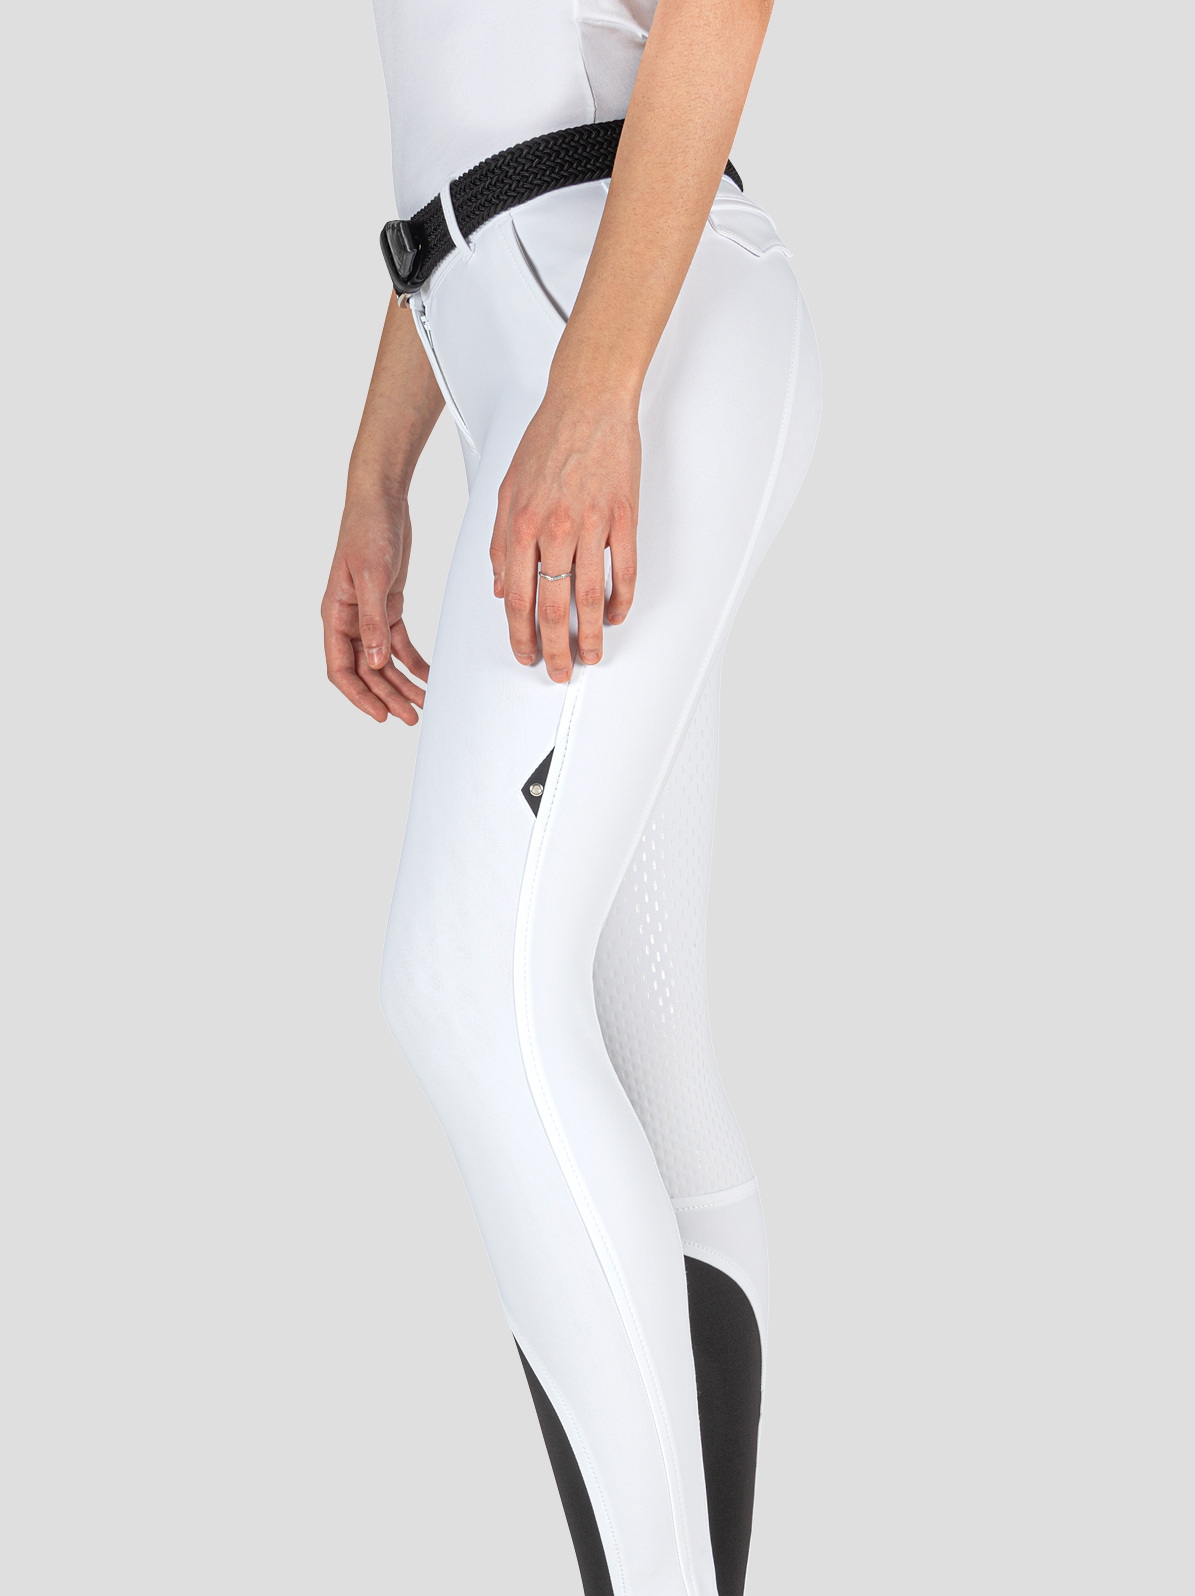 JULIK WOMEN'S FULL GRIP RIDING BREECHES IN B-MOVE FABRIC 1